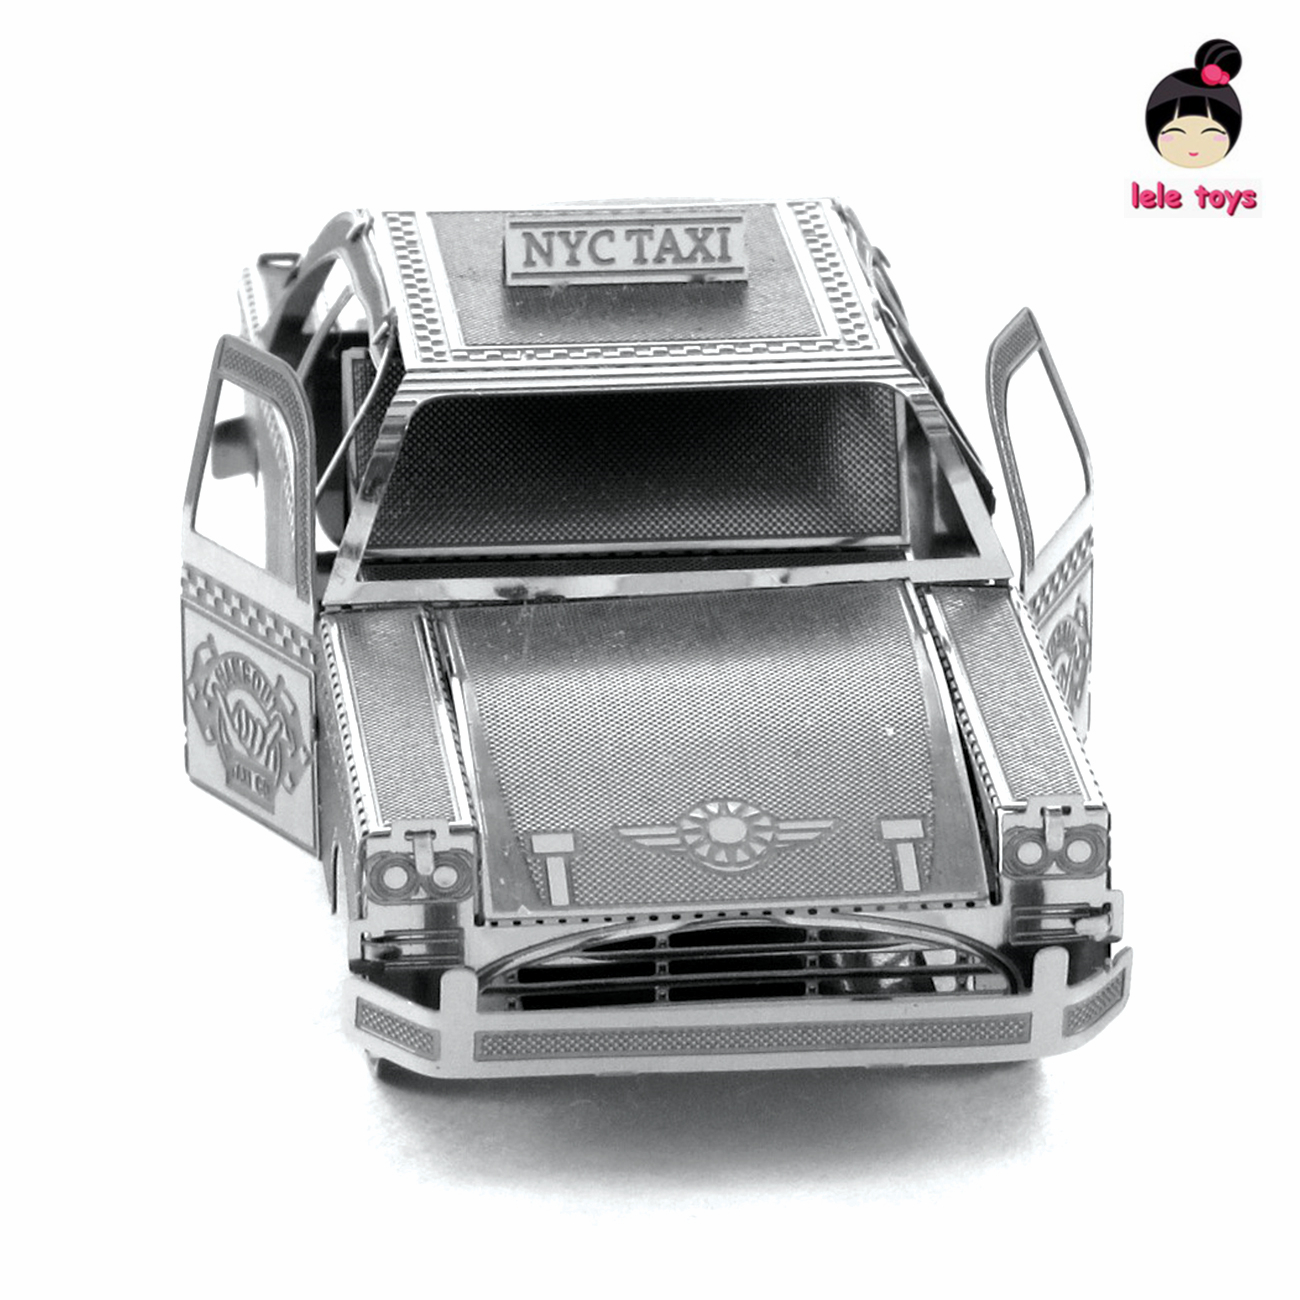 VEHICLES 3D Metal Model Puzzles CHECKER CAB Chinese Metal Earth Stainless Steel New York Taxi DIY 1 SHEET<br><br>Aliexpress